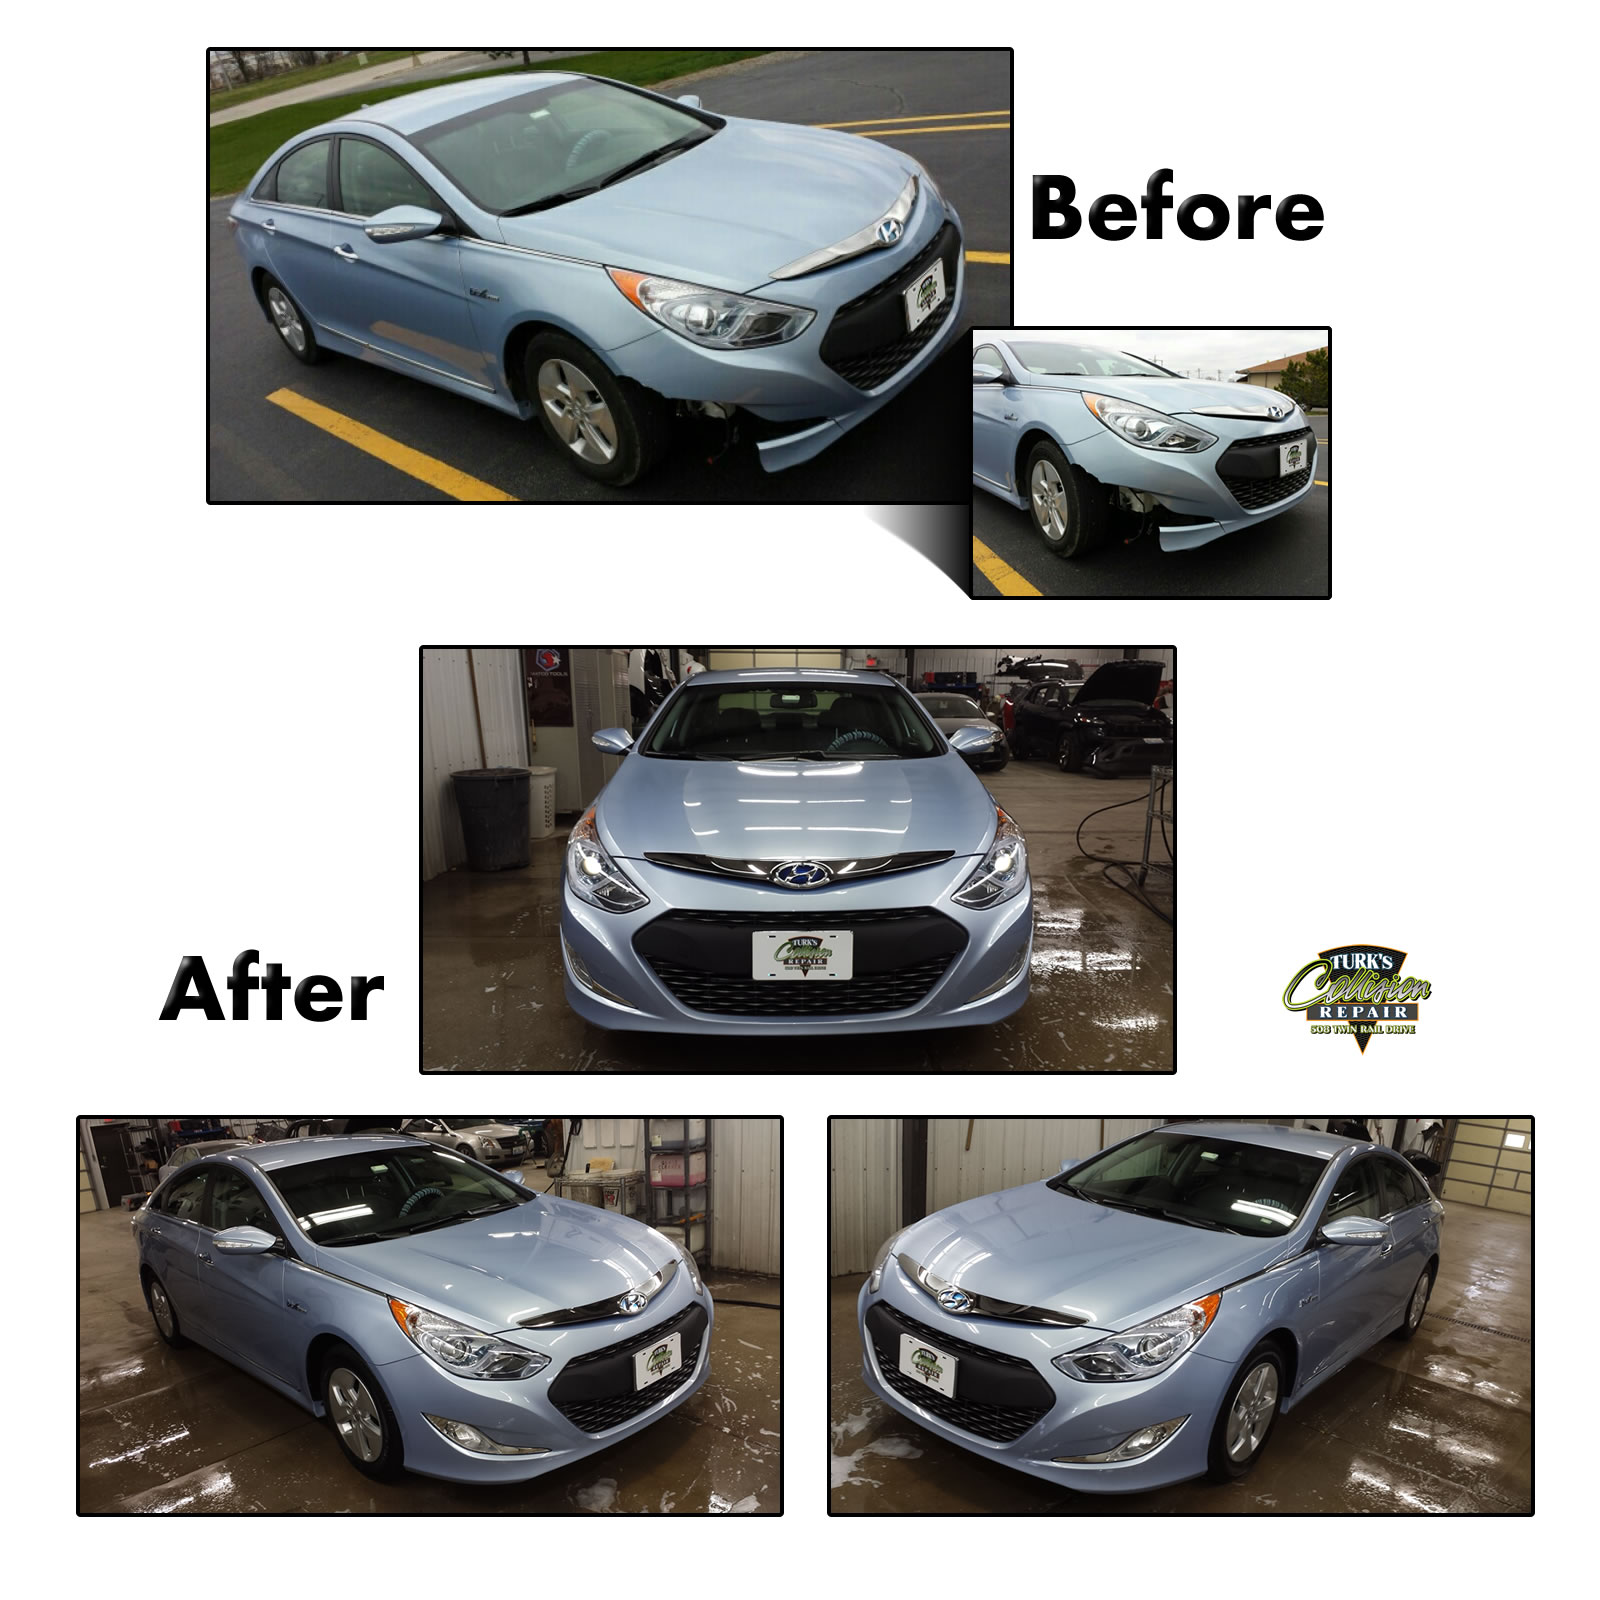 Hyundai Auto Body Repair